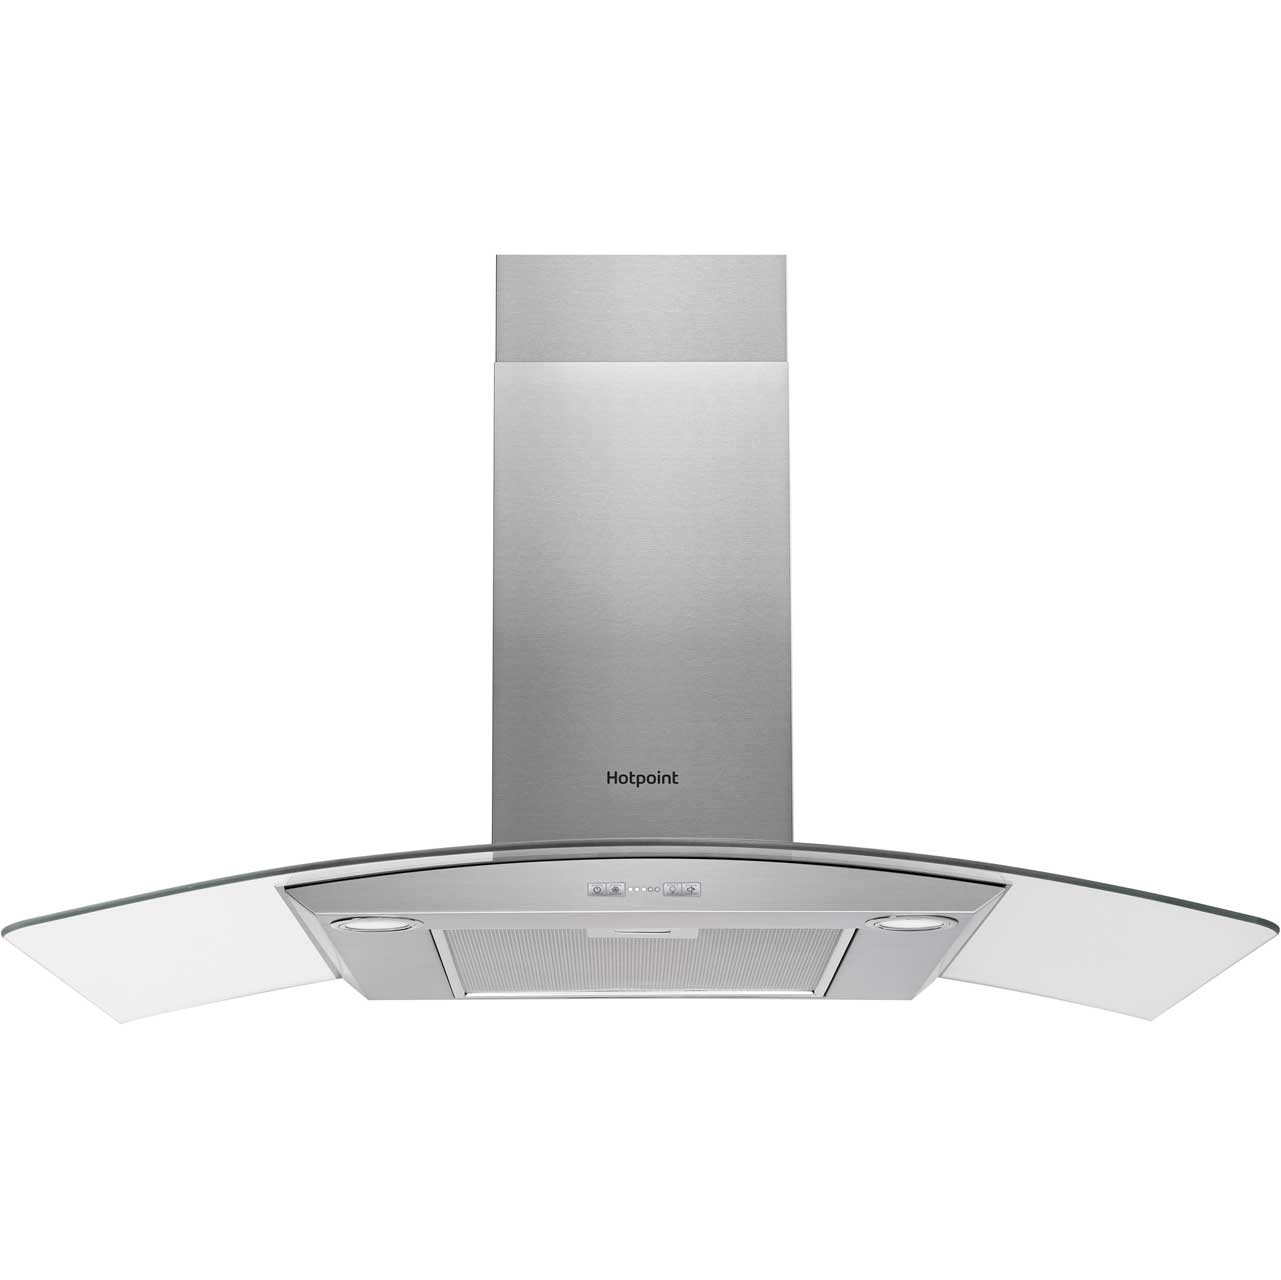 Cooker Hood With A Window ~ Hotpoint phgc fabx cm curved glass chimney cooker hood